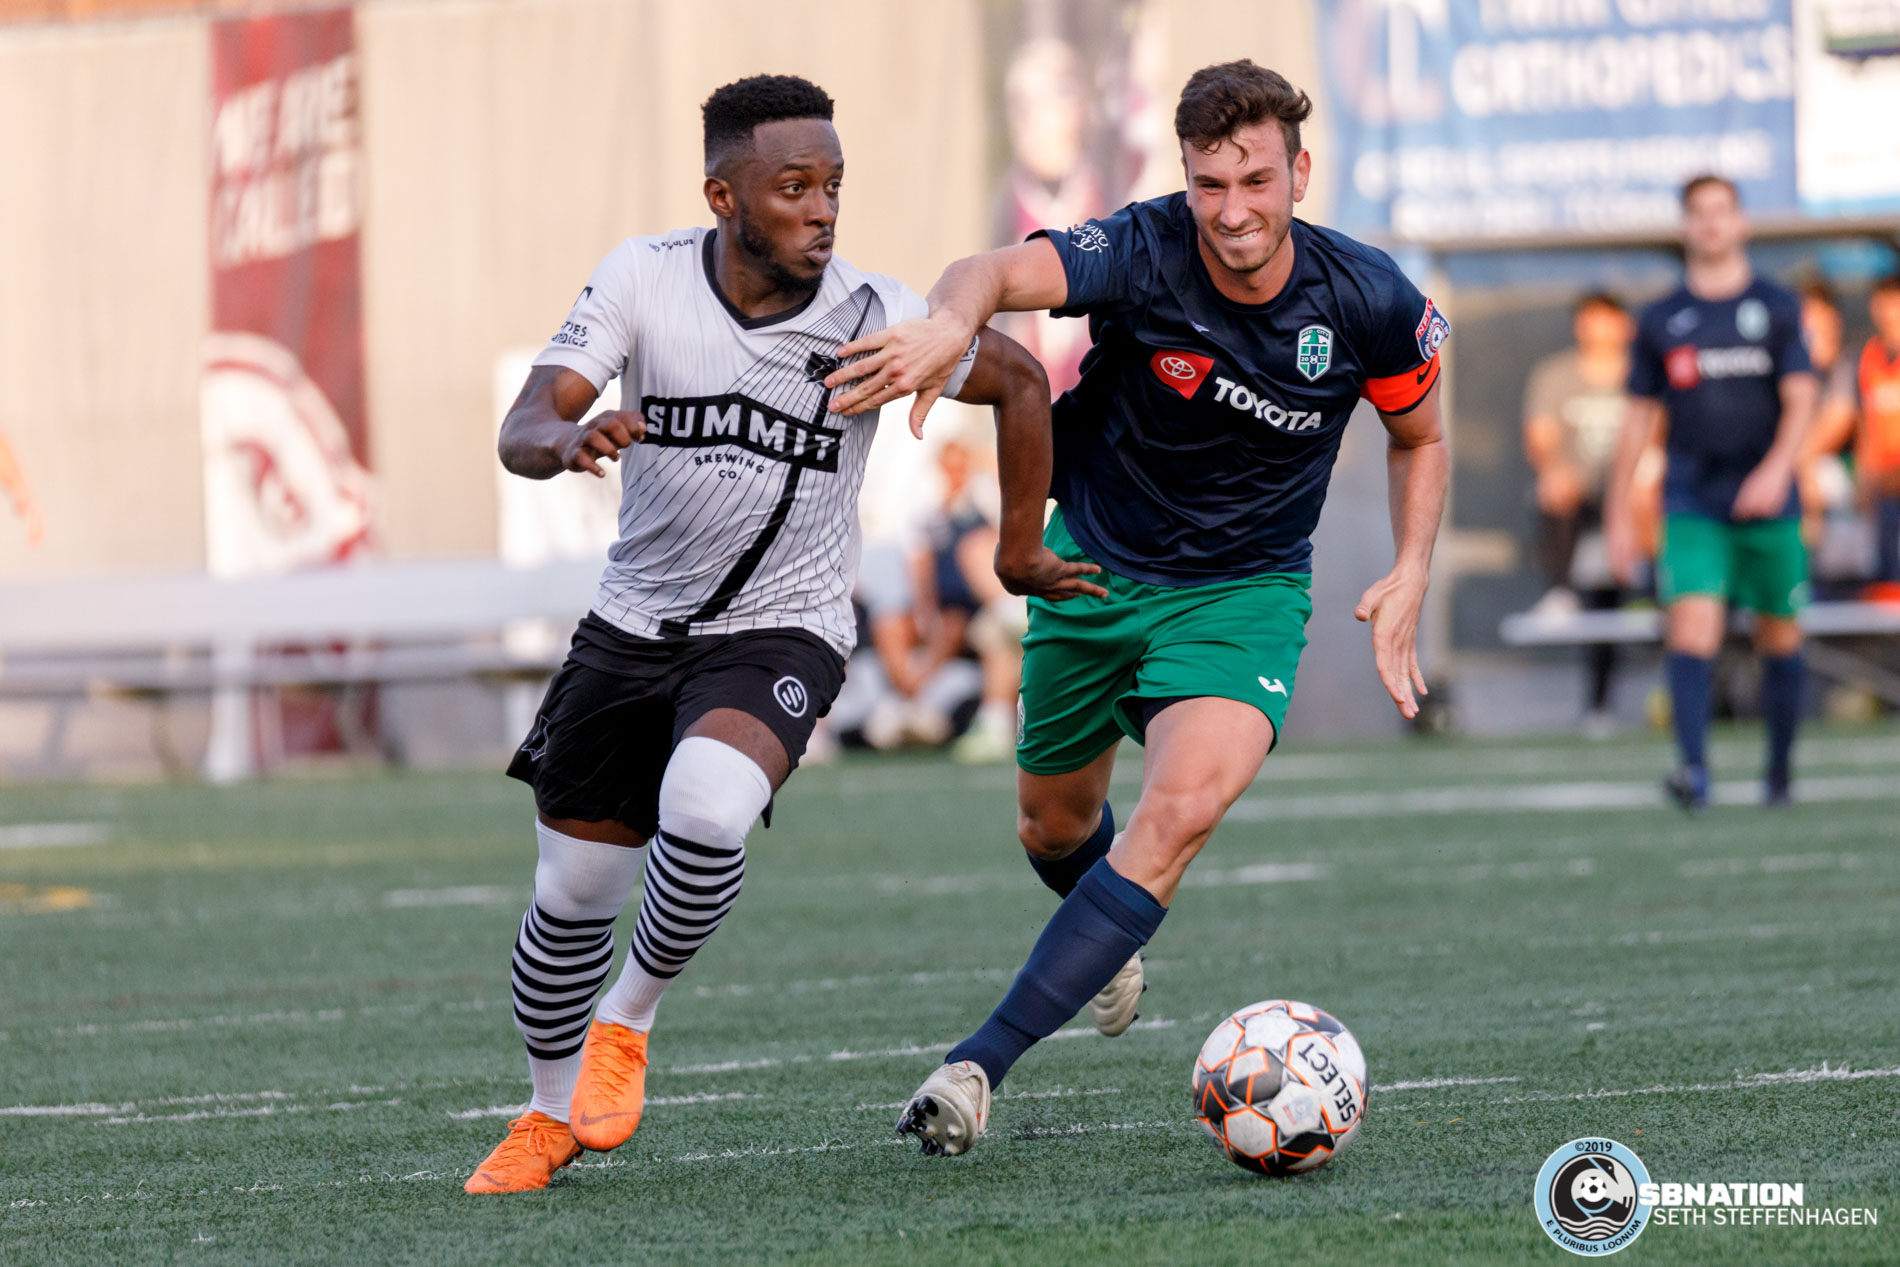 July 12, 2019 - Minneapolis, Minnesota, United States - Minneapolis City SC forward Whitney Browne (10) dribbles around Med City FC player Nicholas Itopoulos during a match at Edor Nelson Field.